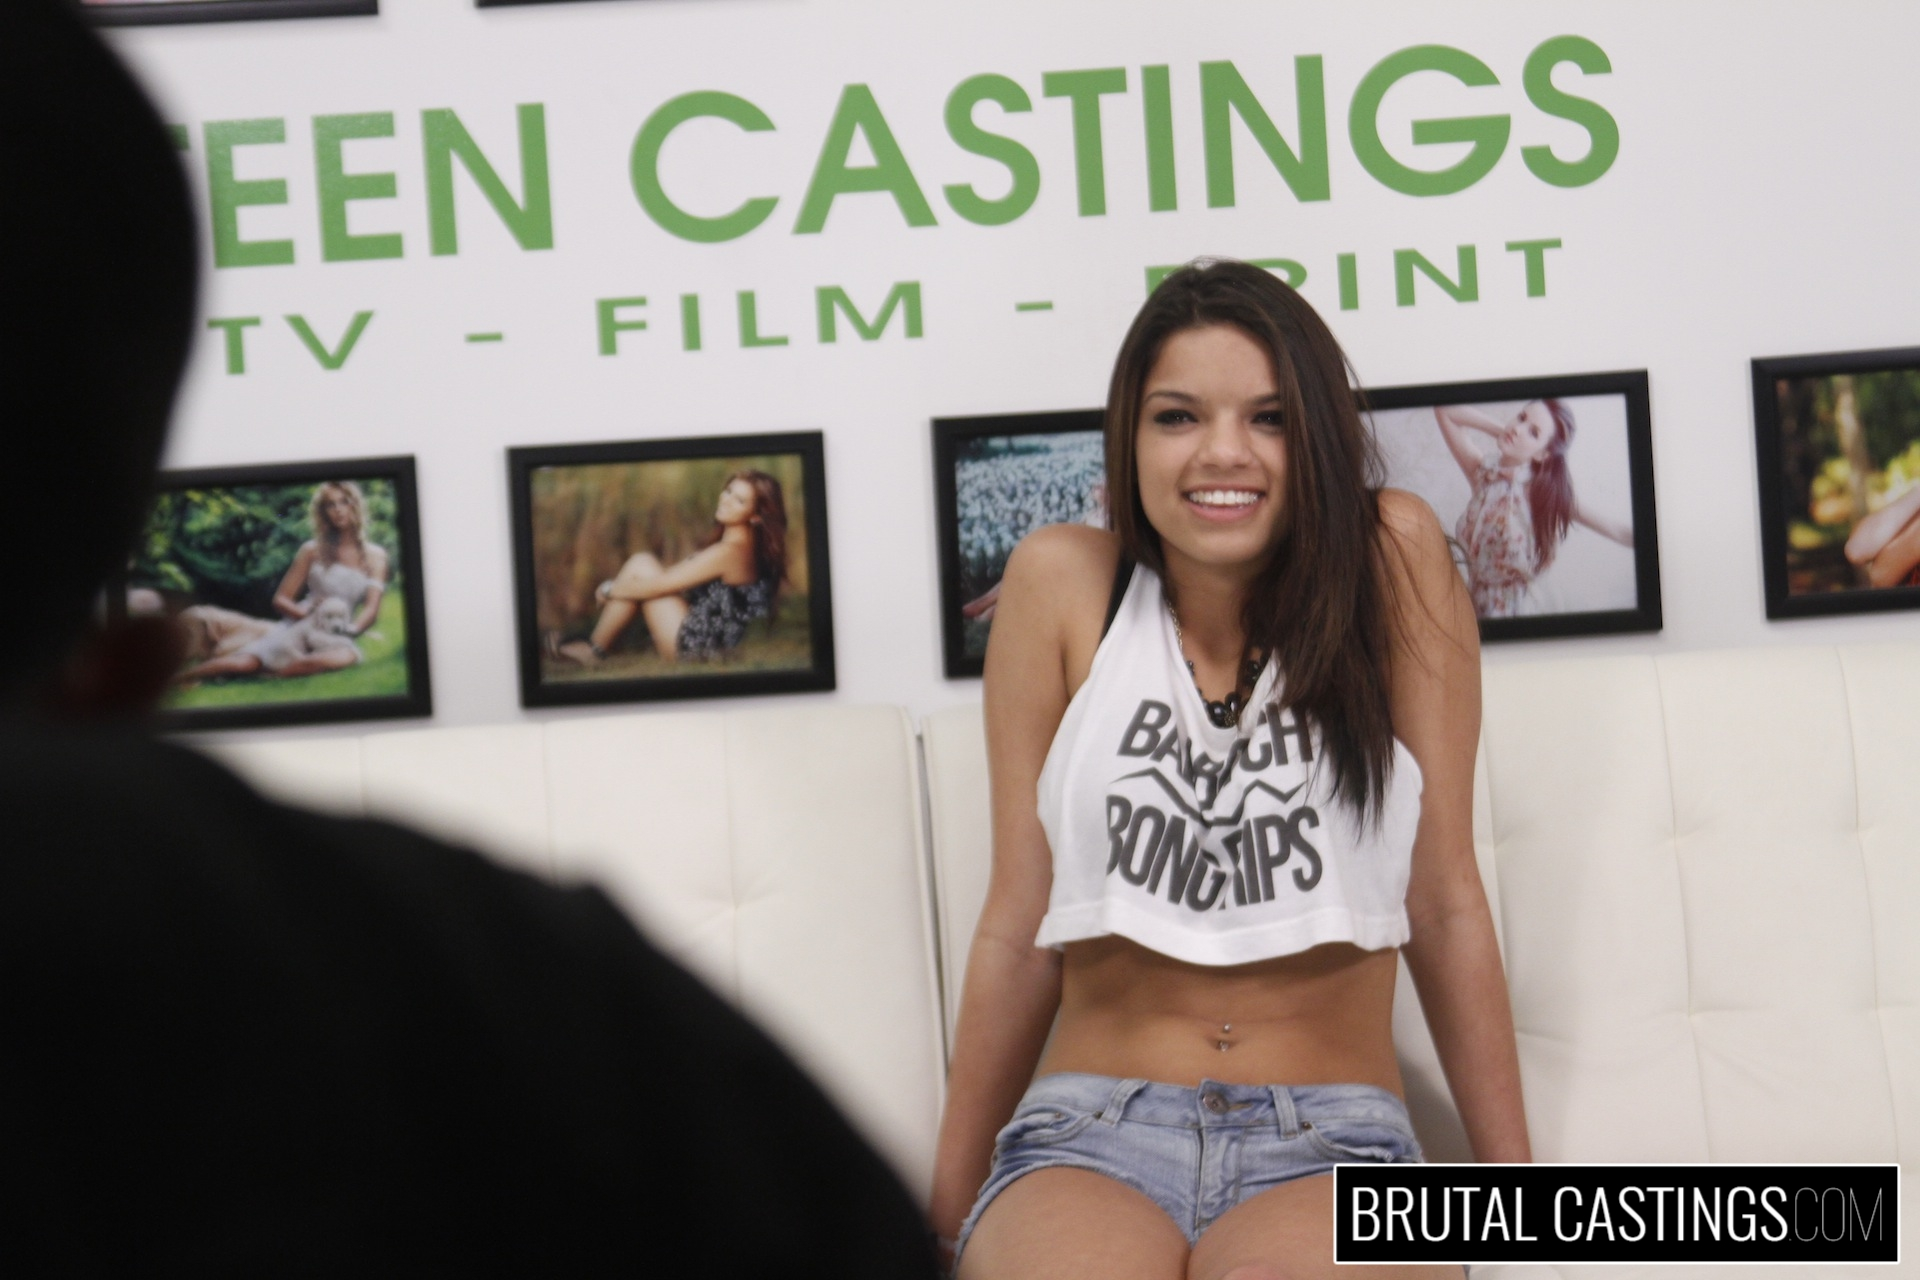 Bdsm casting couch with carrie brooks. Carrie Brooks, a hot young smiley face with caramel skin, wants to become a model and all the fun perks with Teen Castings! She'll do anything to get what she wants. She'll even endure BDSM, domination, rope bondage, deepthroat bj, fingering, squirting, spanking, slapping and deep penetration violent sex.